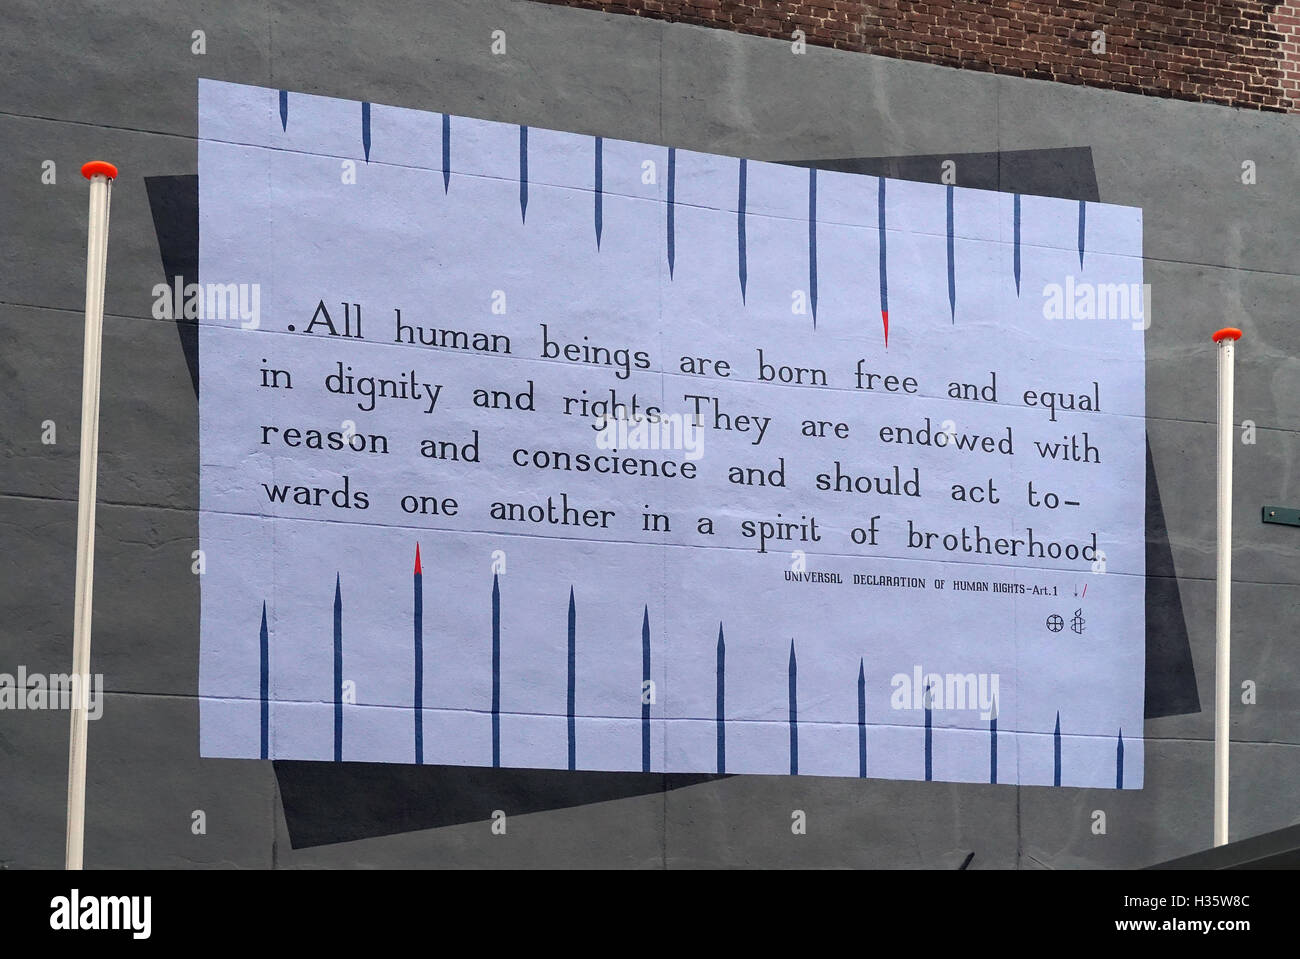 Mural from art.1 Universal Declaration of Human Rights - Stock Image